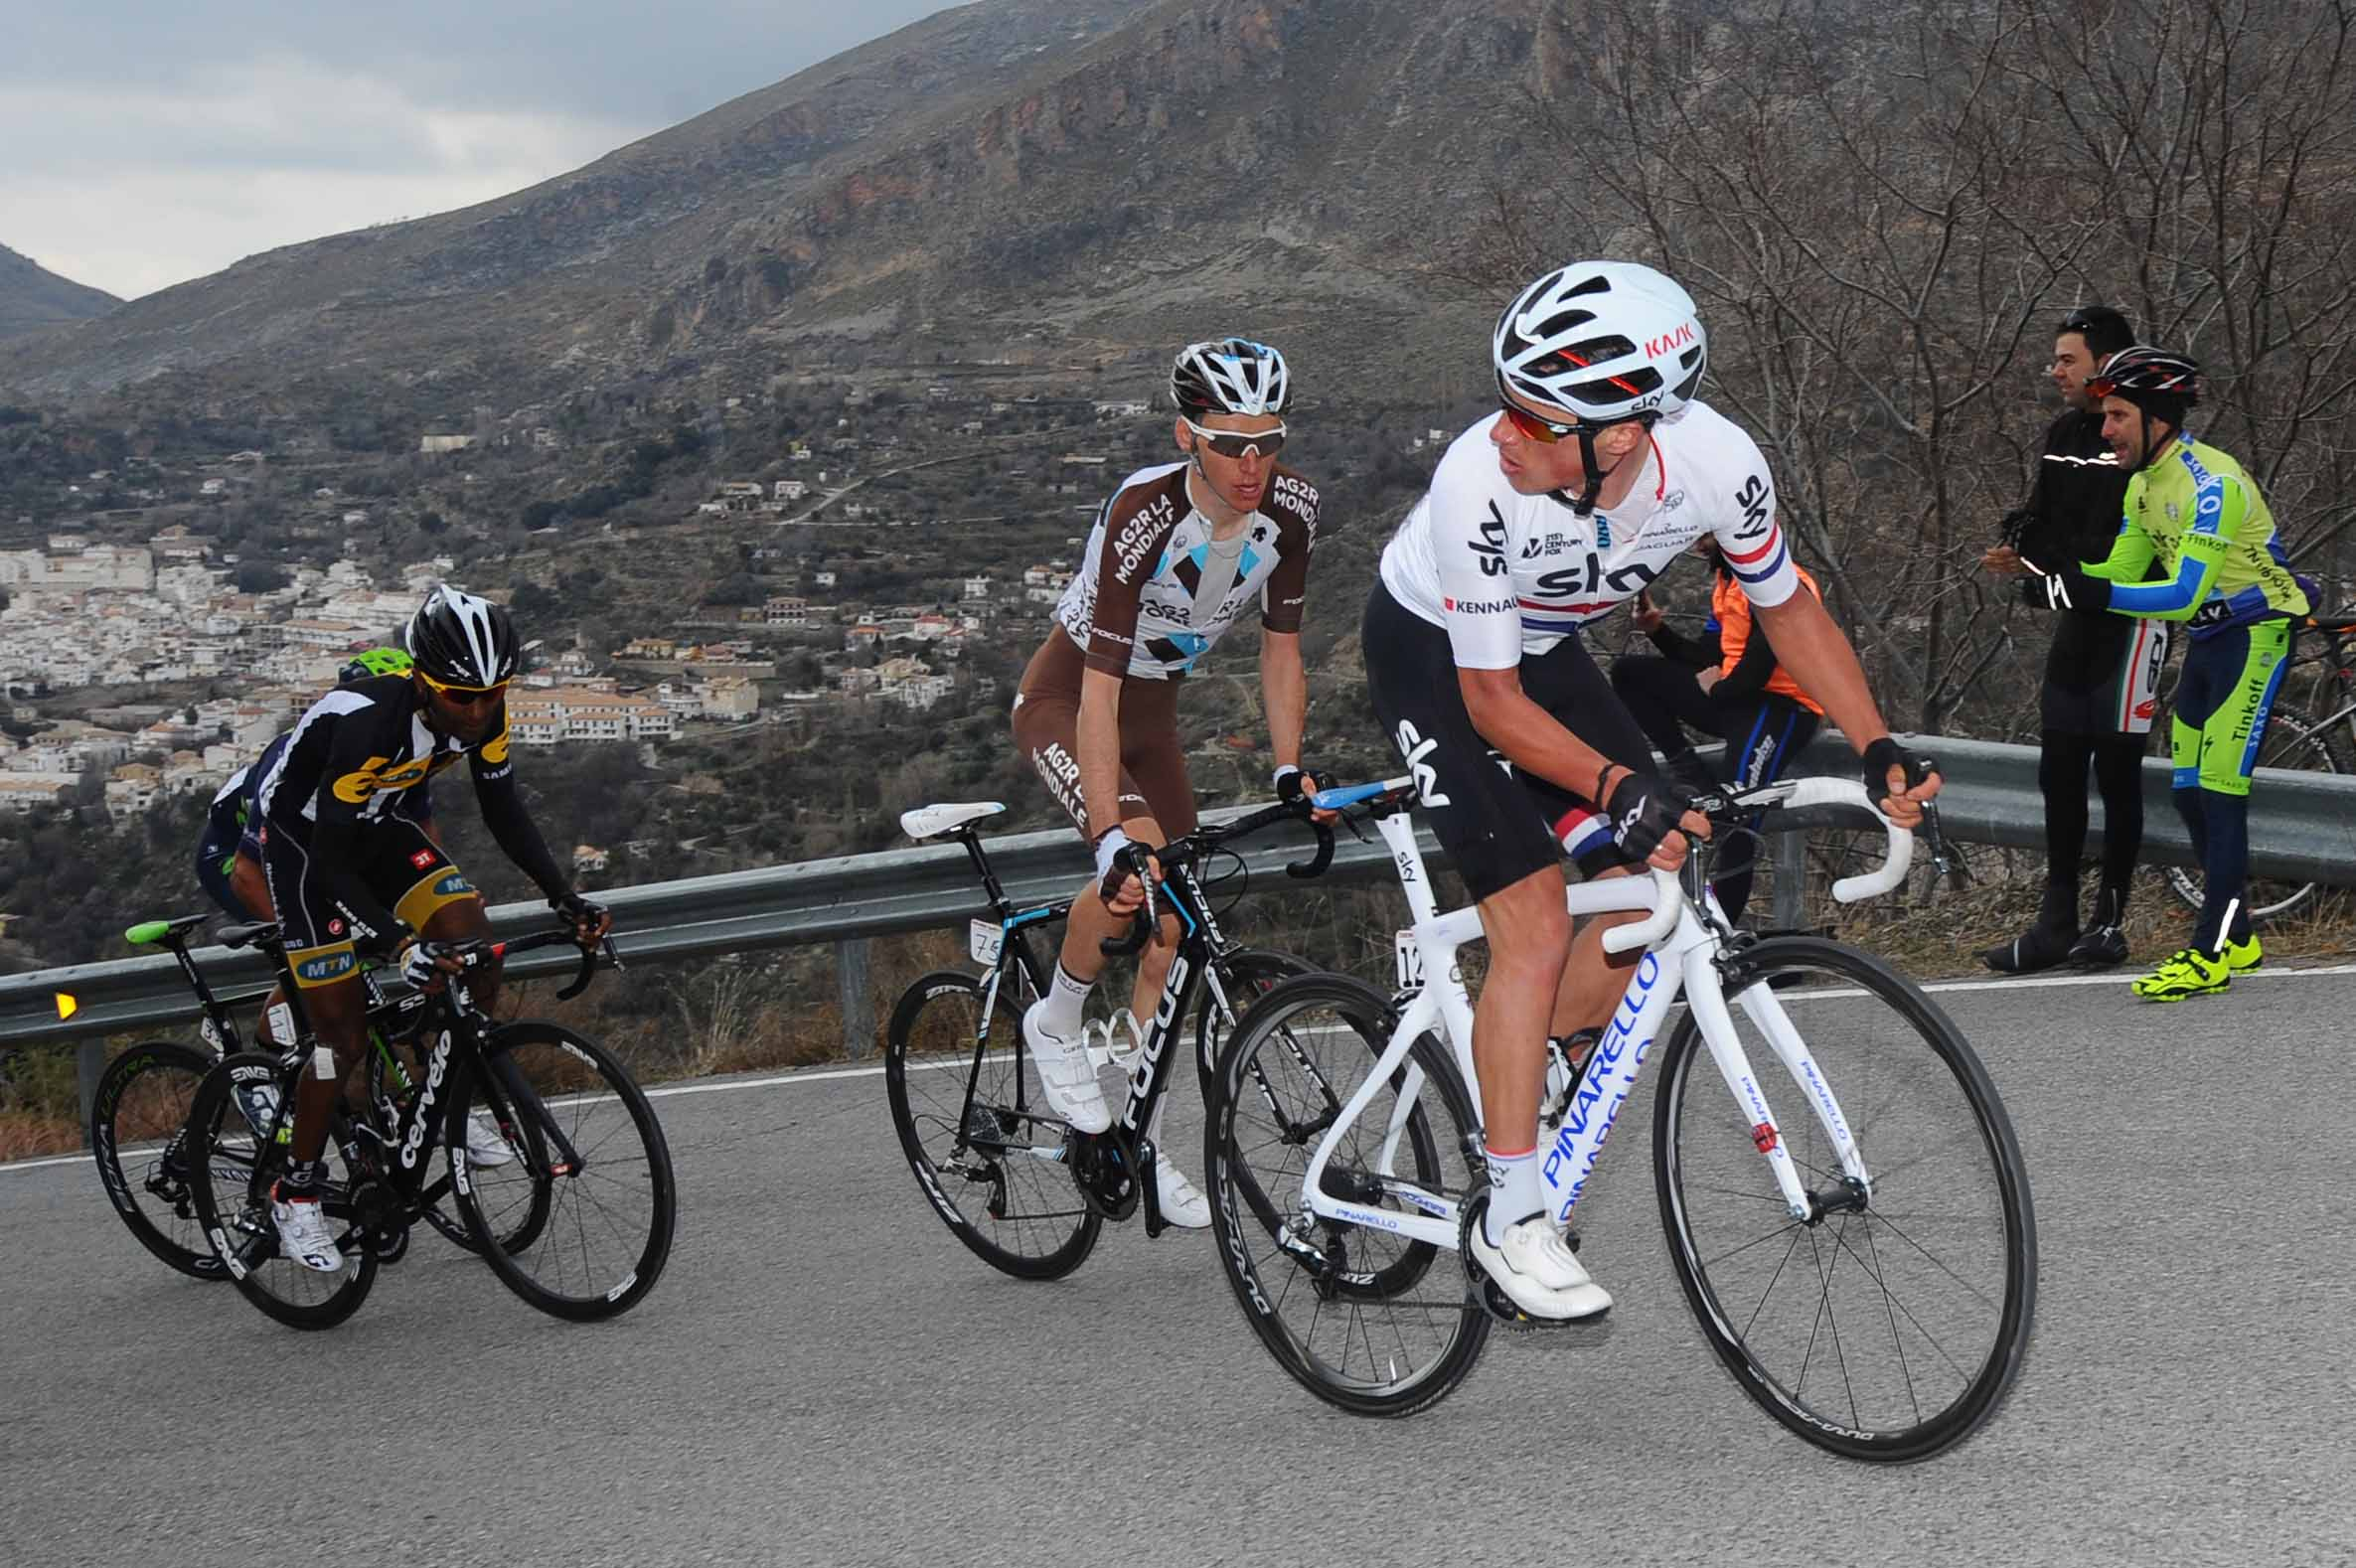 Peter Keennaugh checked the situation on the final climb. Kennaugh finished in the top ten on the stage, and sits fifth oveall. Photo: TDWsport.com